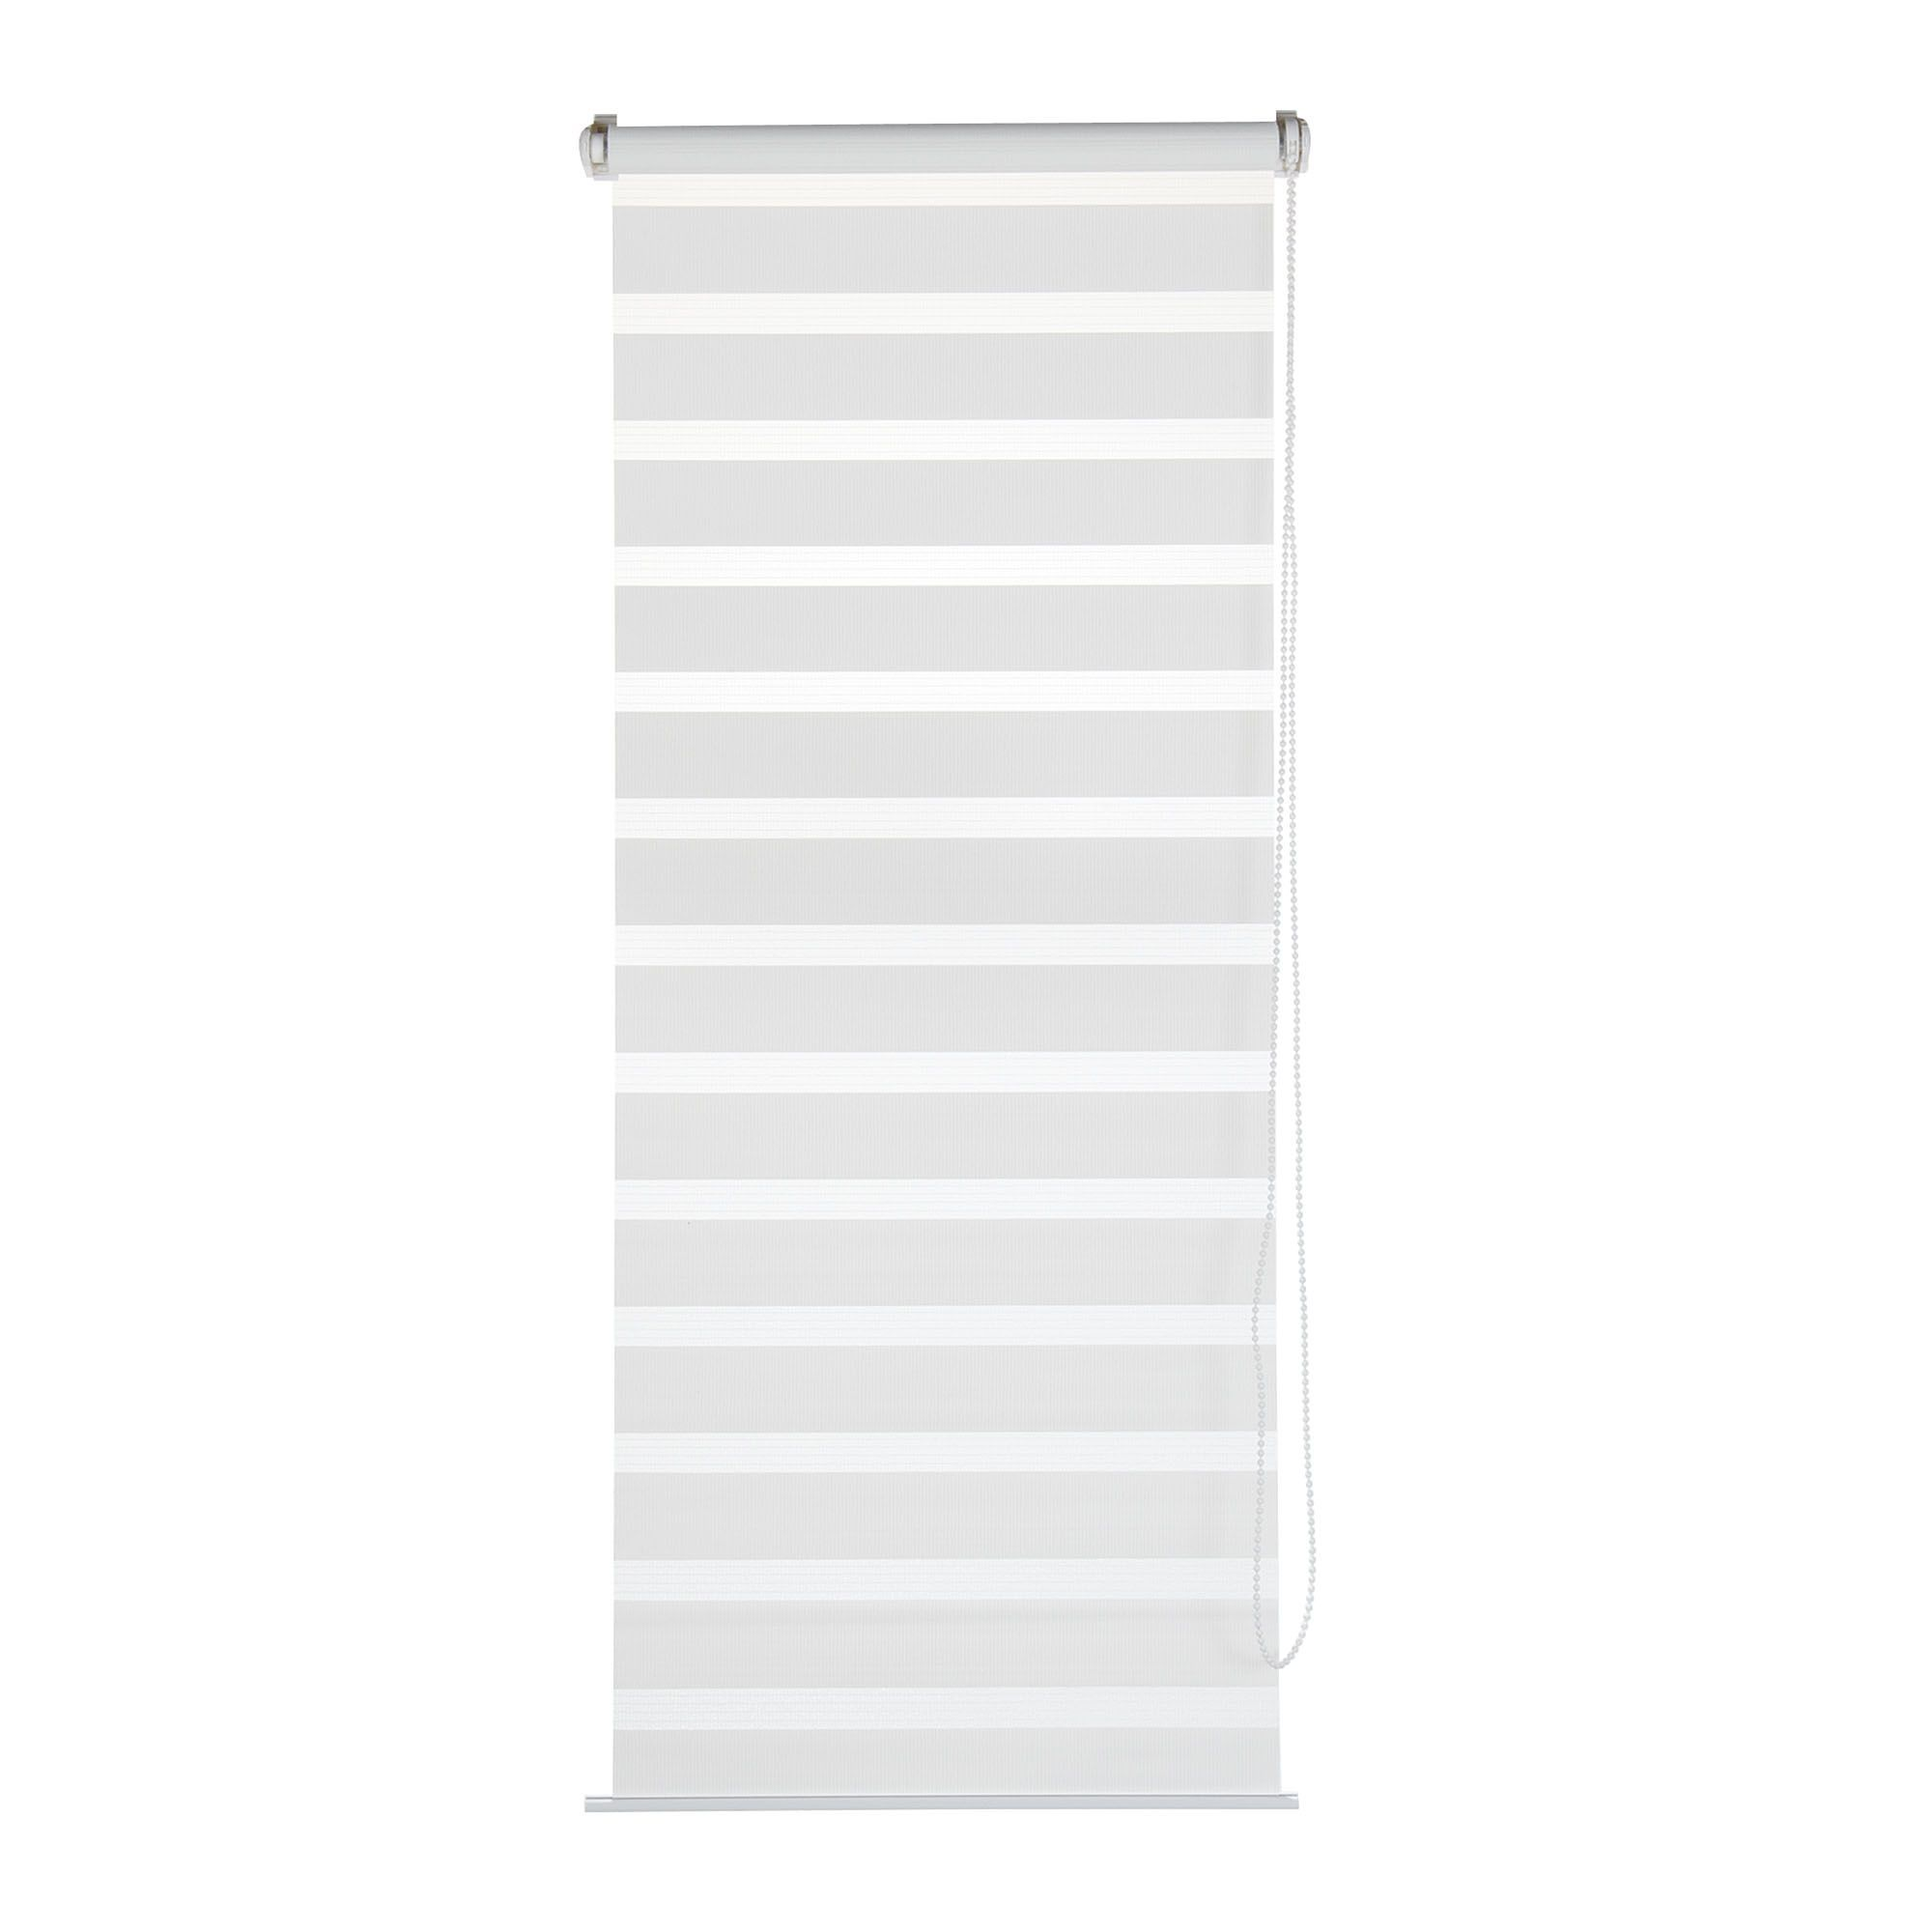 Store enrouleur tamisant blanc 45x150cm - Easy roll jalousy - Stores ...